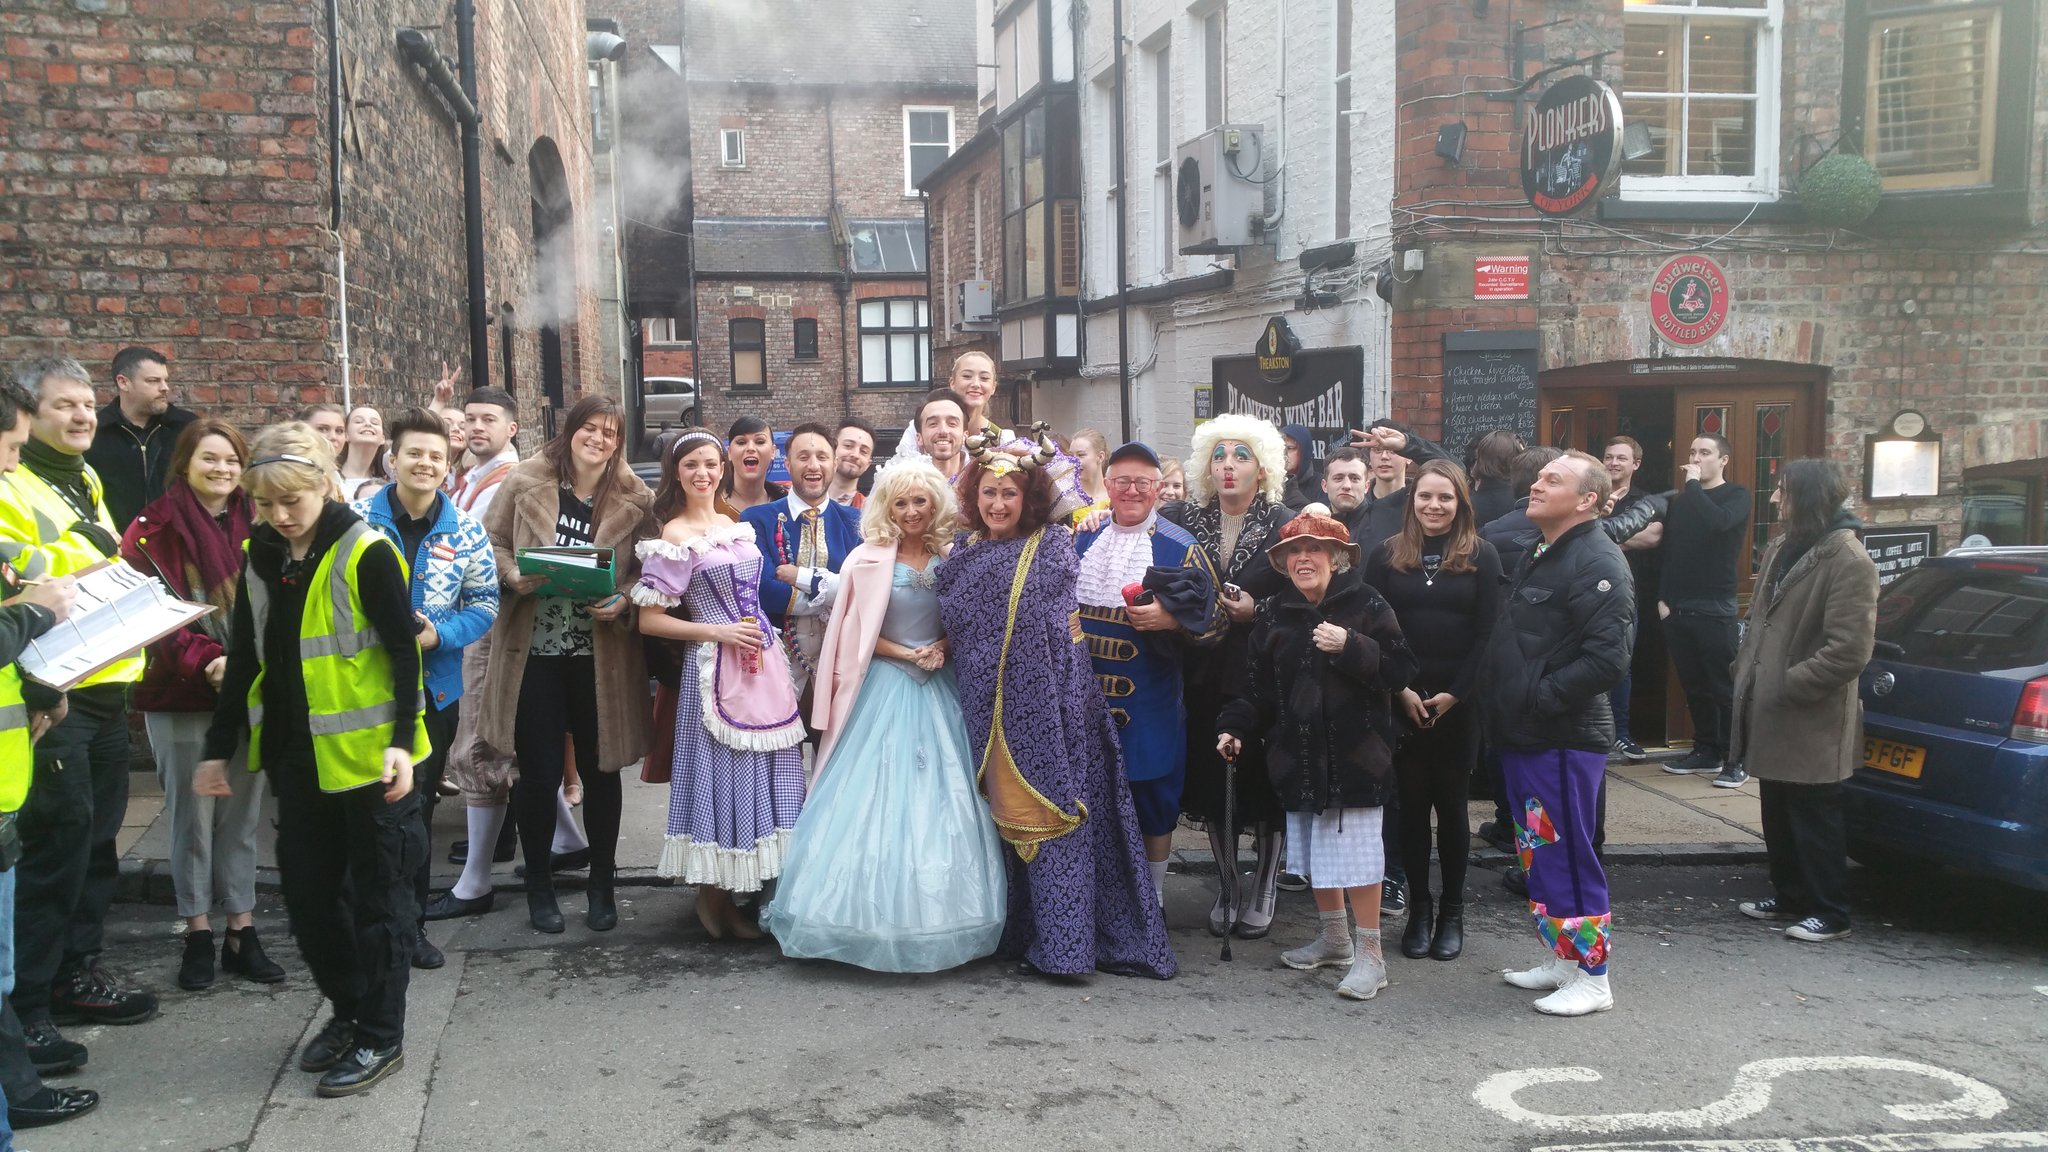 When the panto theatre is evacuated mid show it becomes fun in the street 😊😊😊 https://t.co/BRXgp7urRo